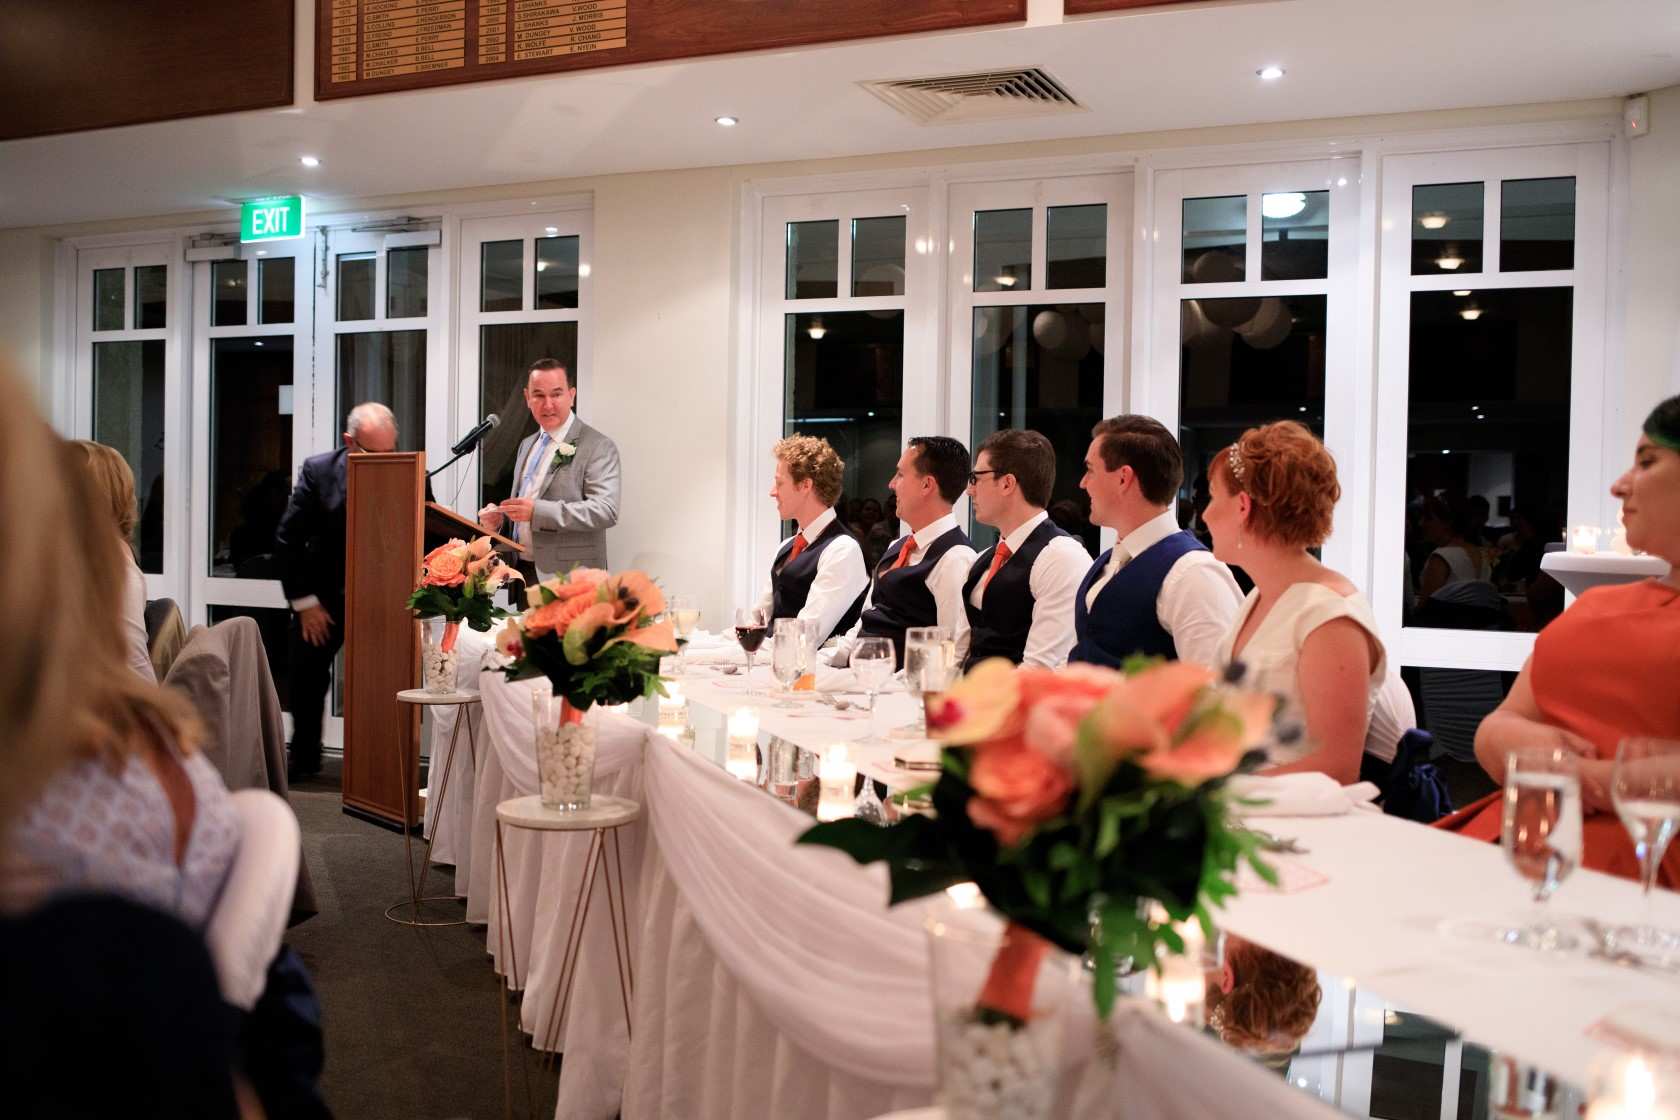 087-perth-wedding-reception-mount-lawley-golf